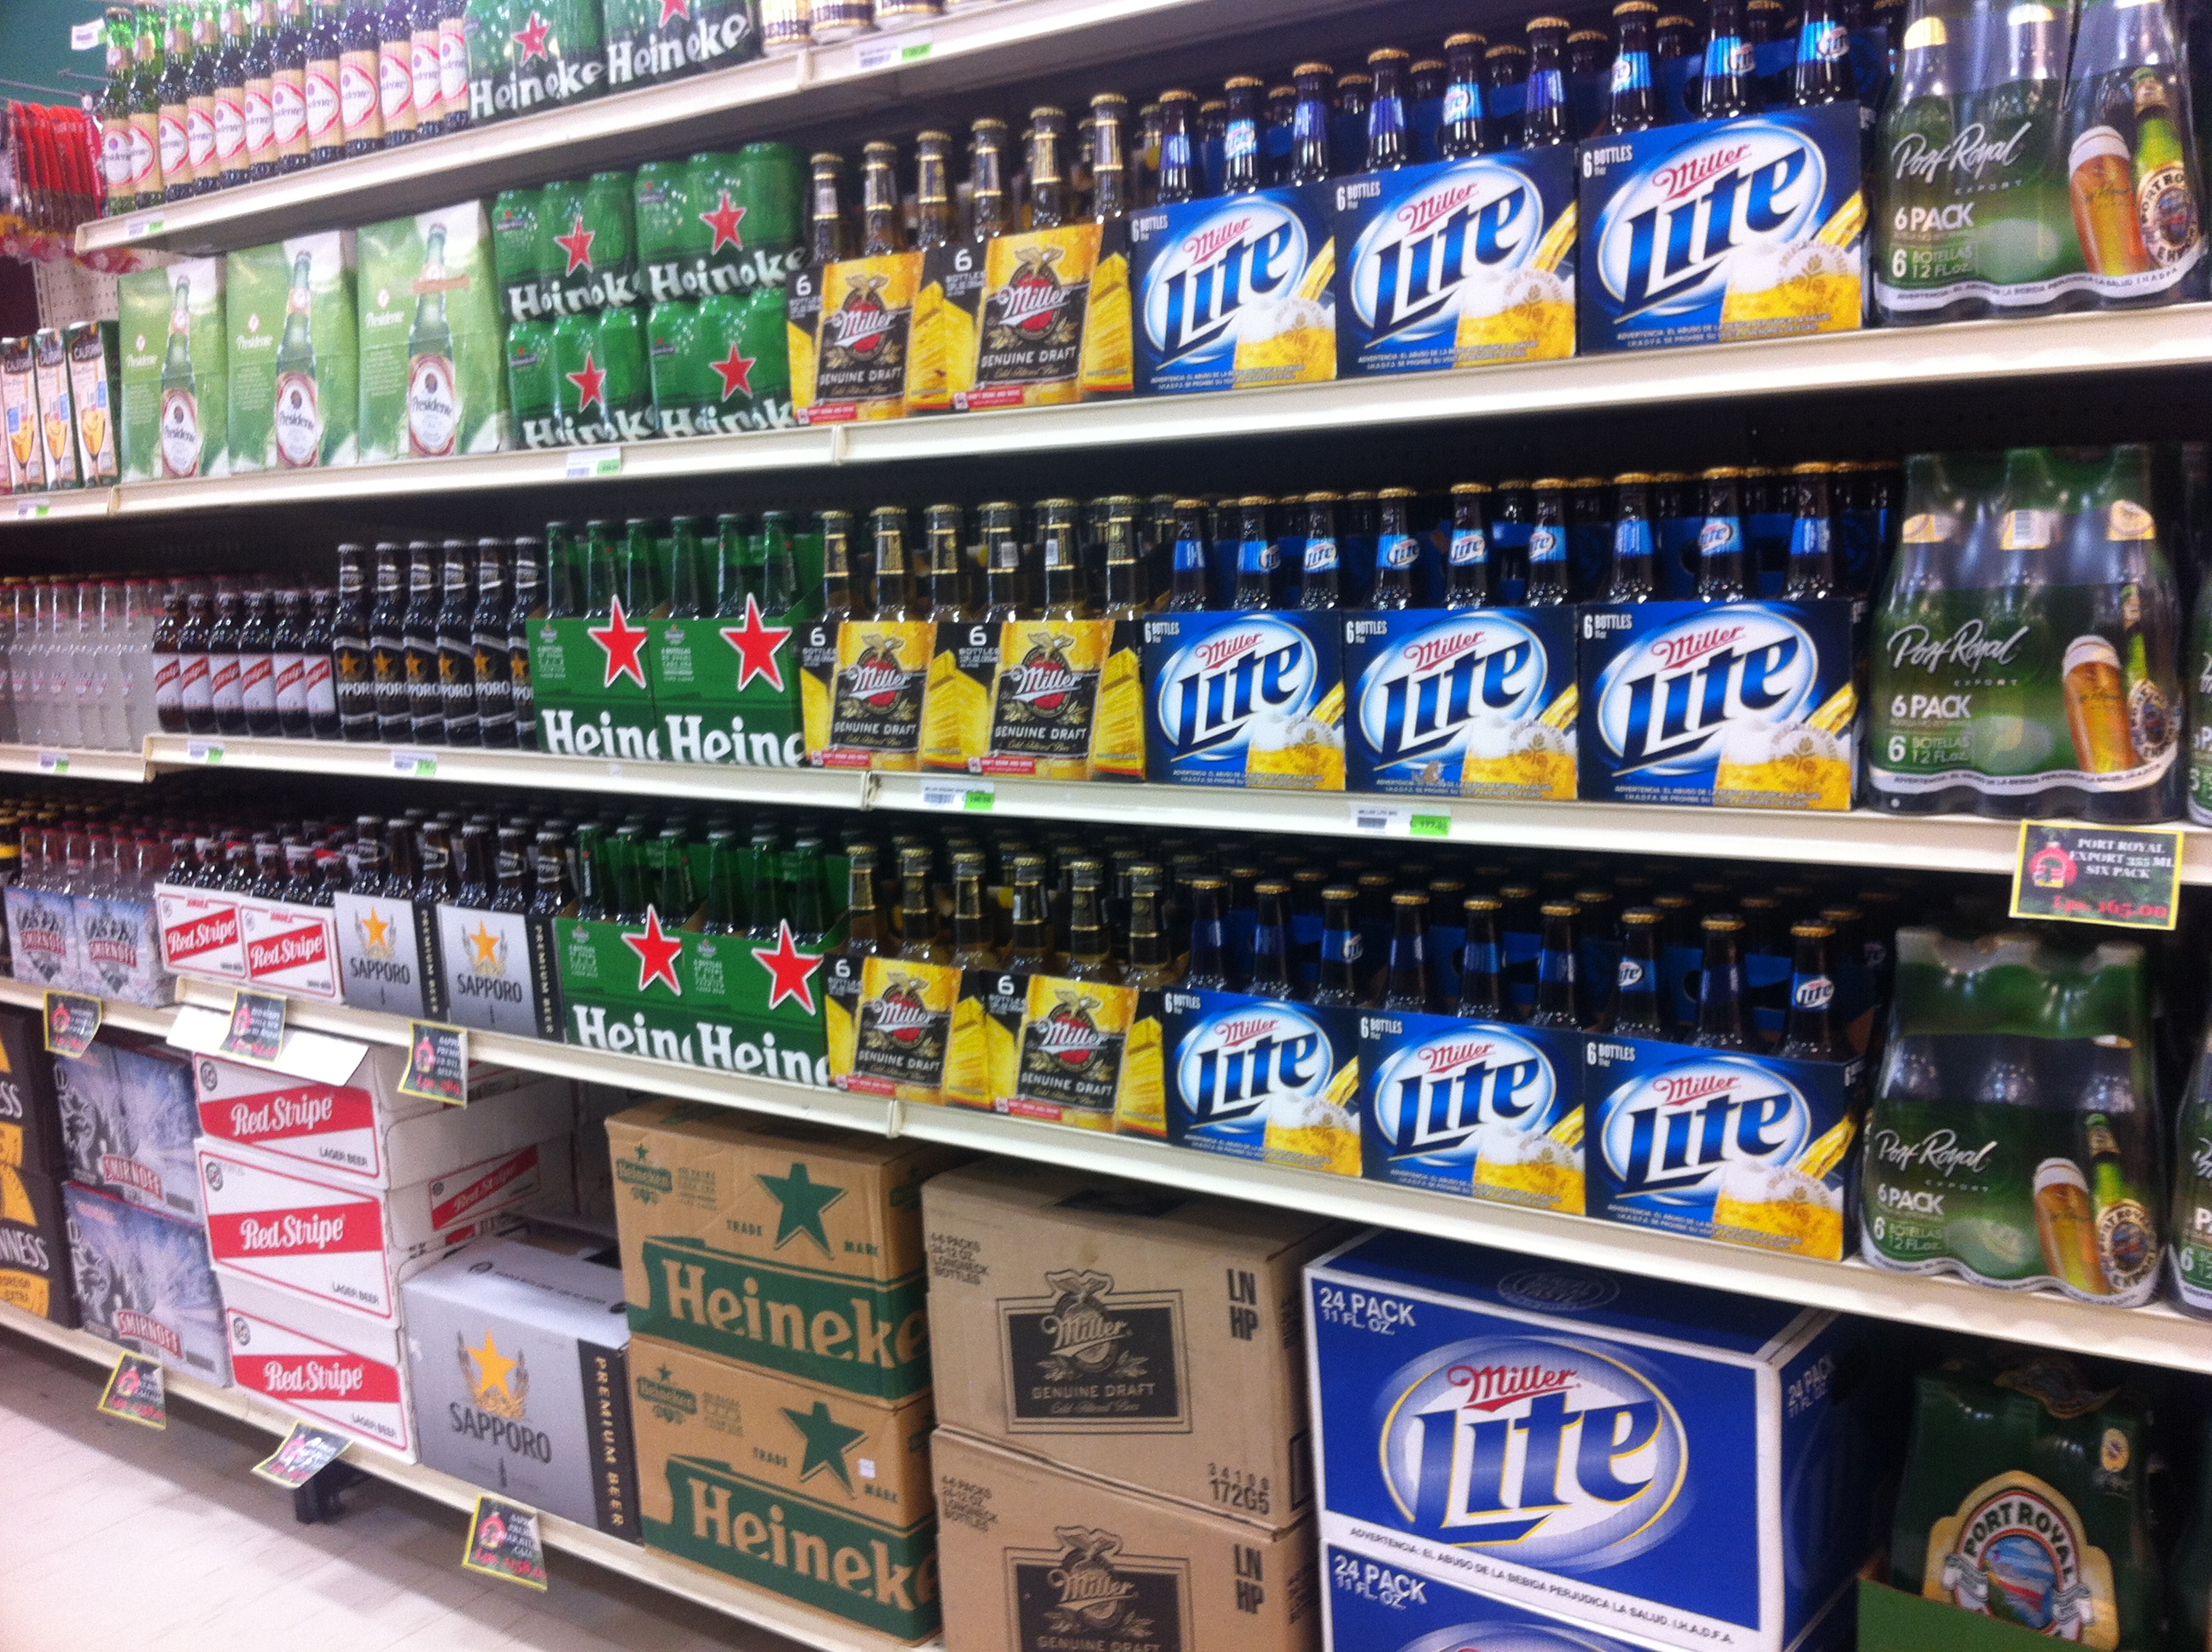 A sample of the imported beers available at Eldons grocery store in Roatan.